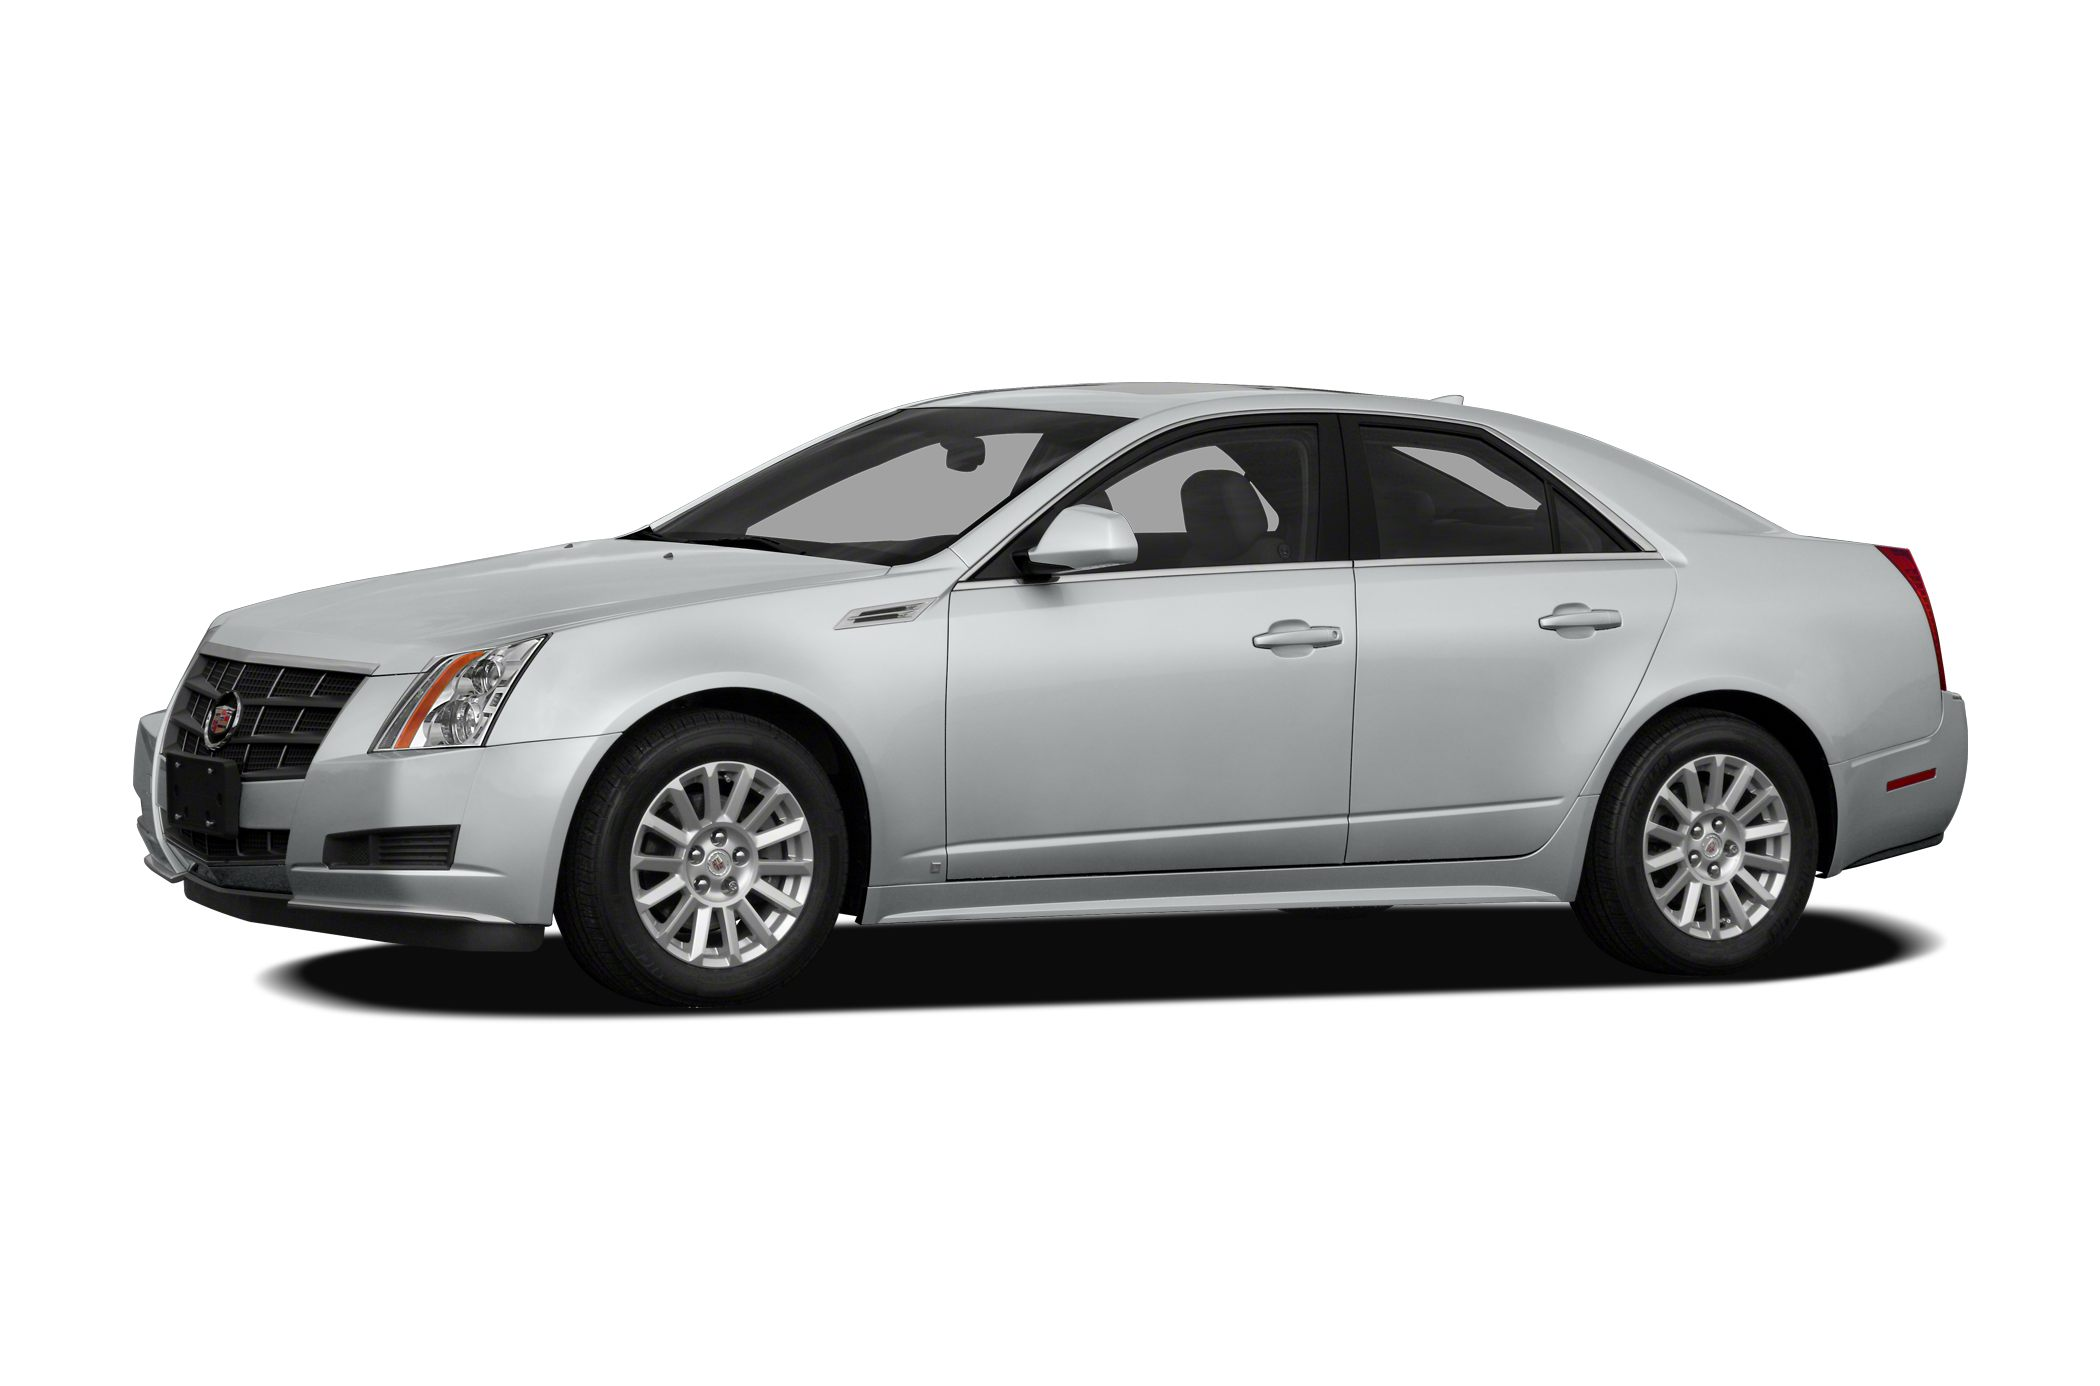 2011 Cadillac CTS Luxury FLORIDA OWNED CADILLAC CTS SEDAN LUXURYCLEAN CAR FAXTWO OWNERLavish